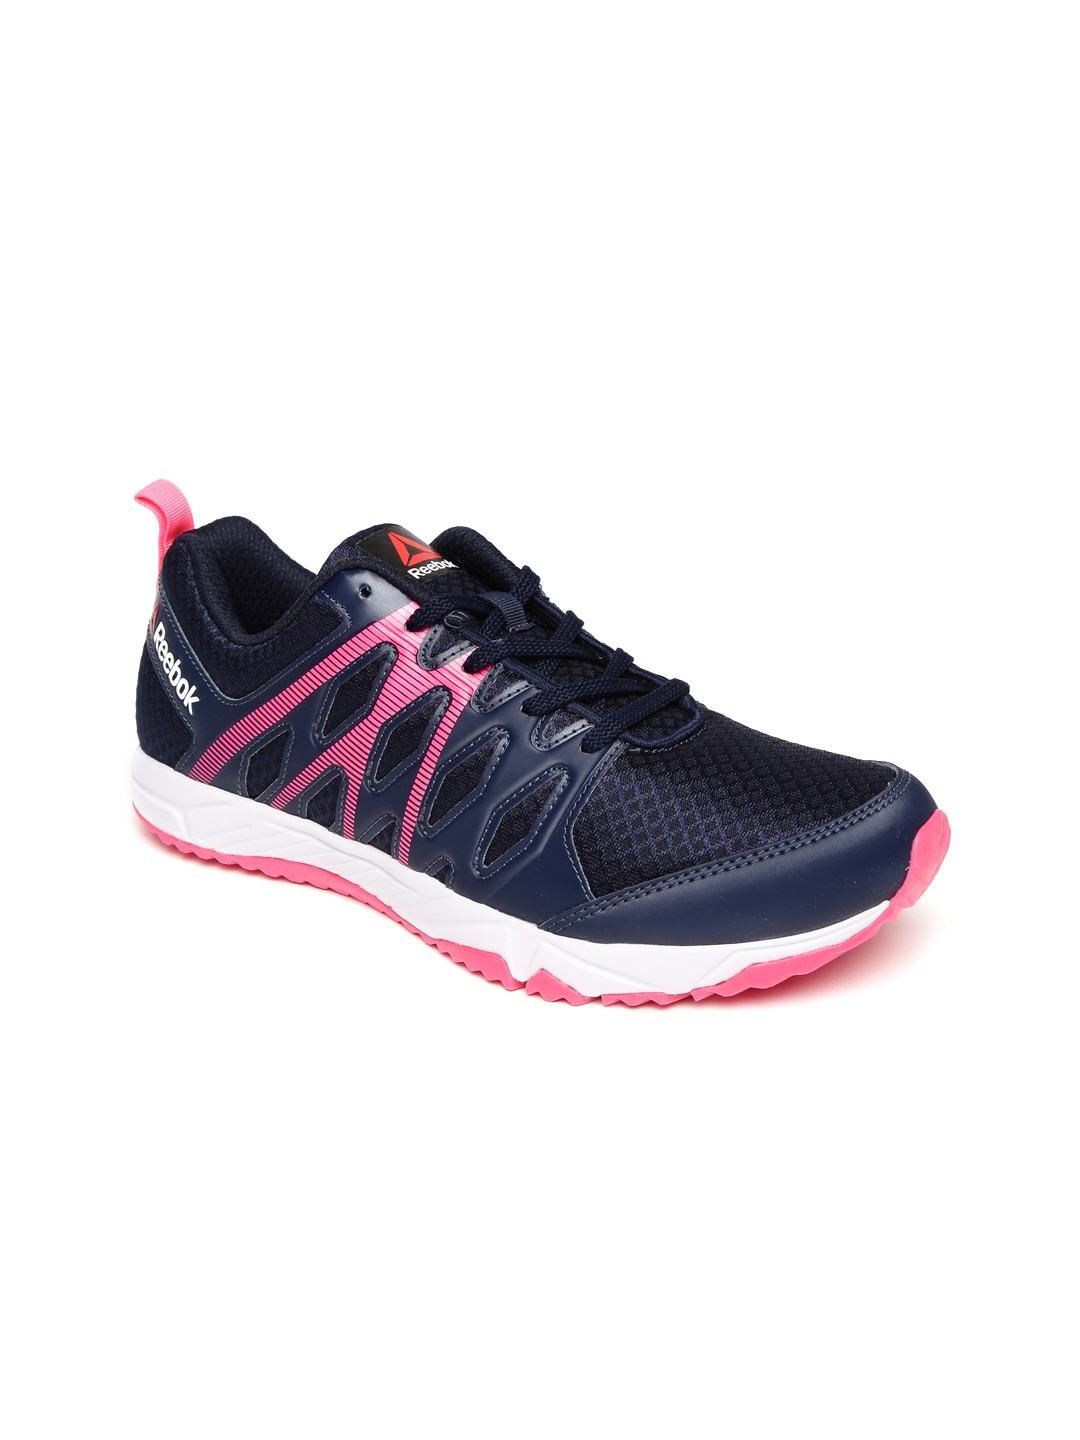 5610959a5815 Buy reebok ladies walking shoes   OFF55% Discounted